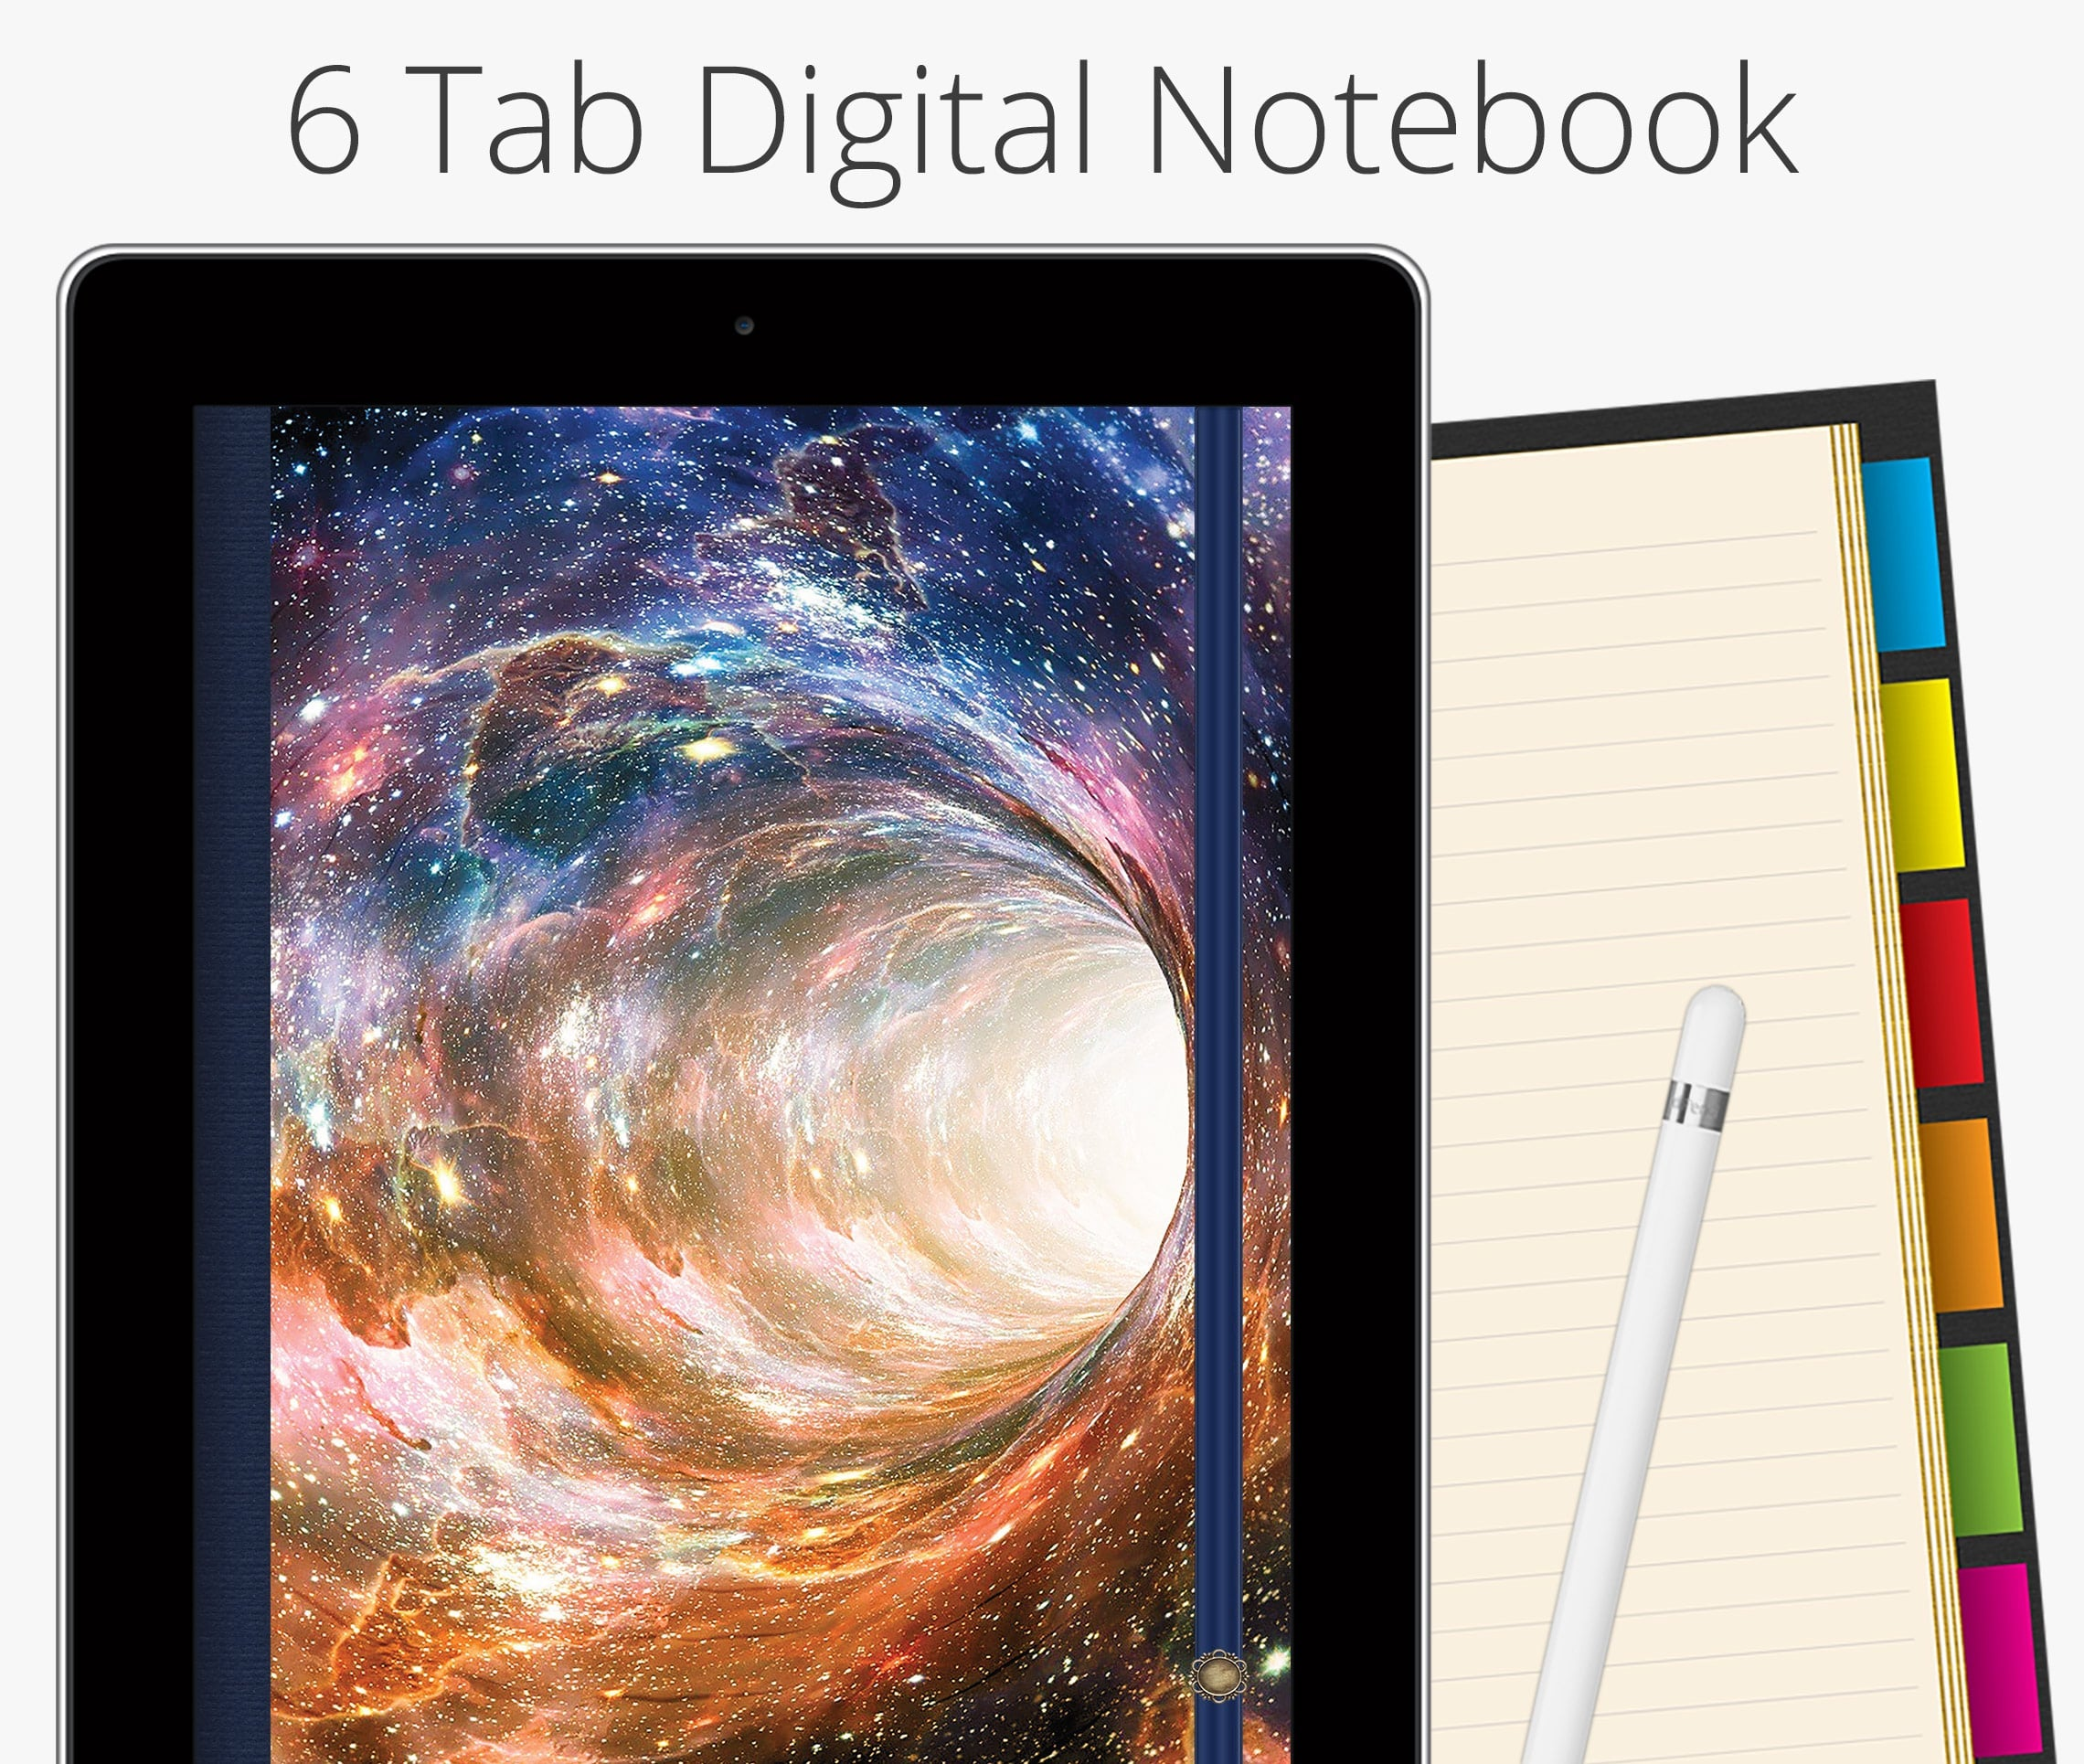 6 Tab Digital Notebook, Outer Space Wormhole